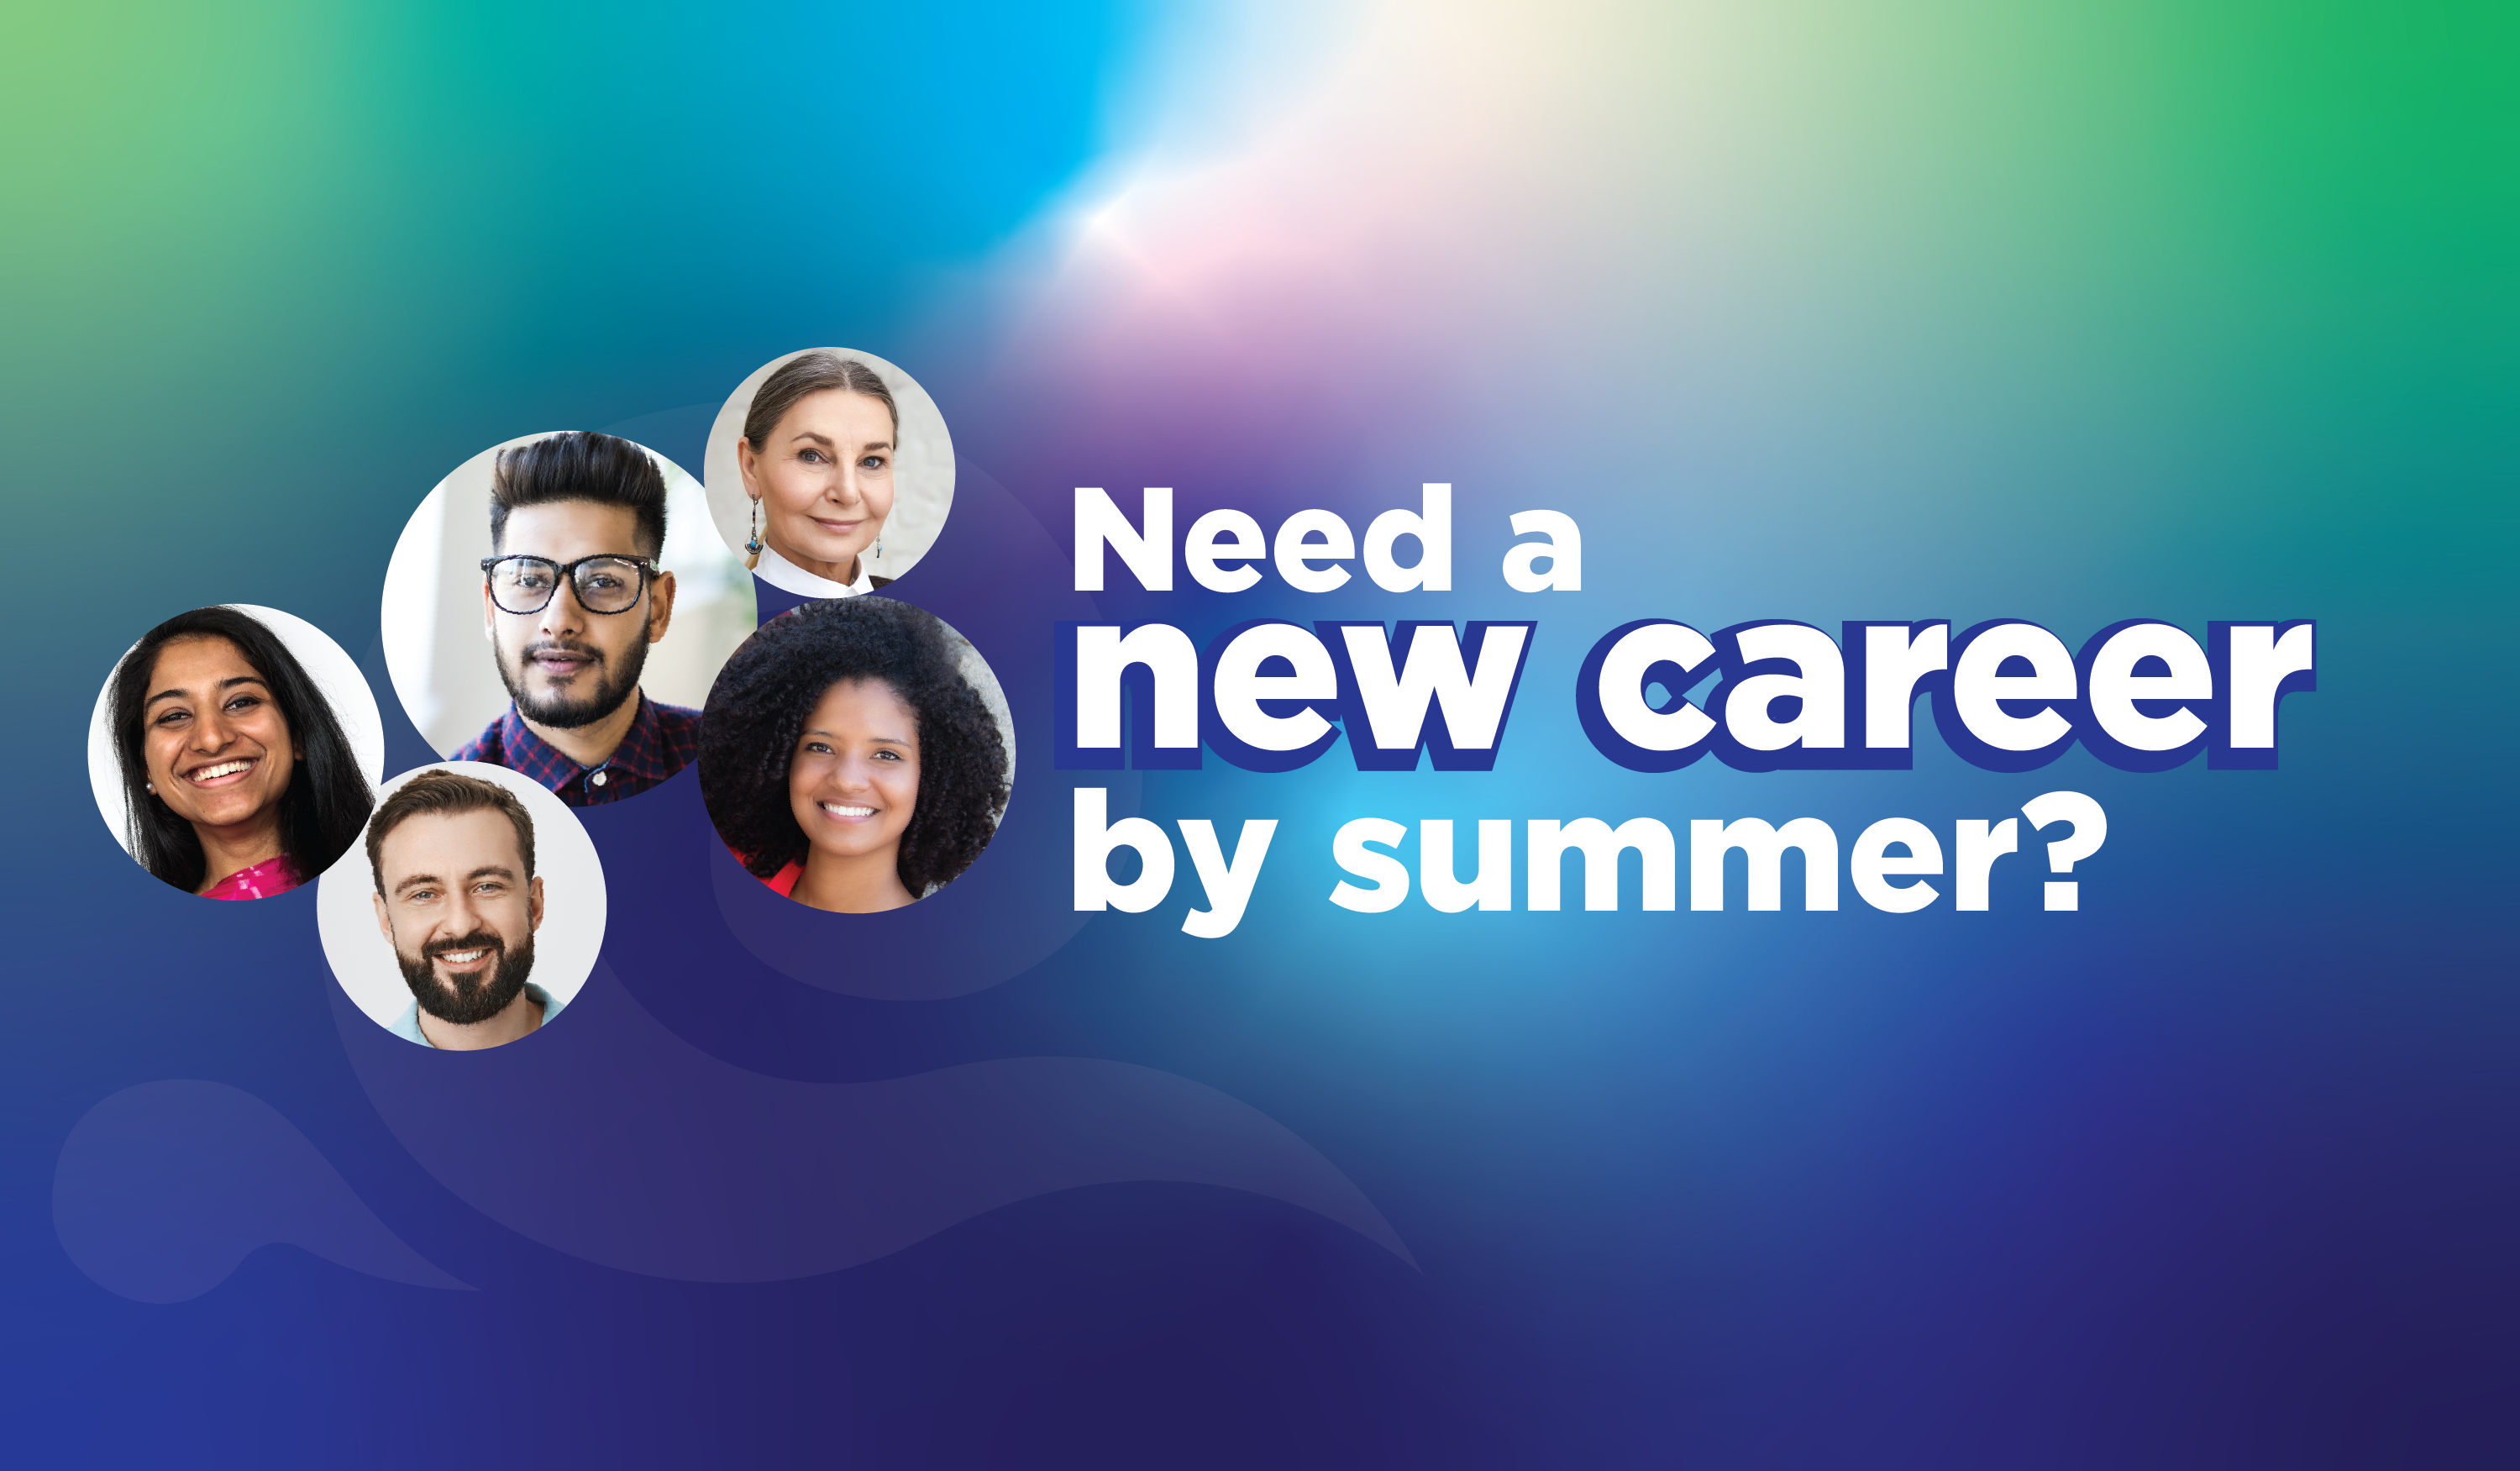 Need a new career by summer?